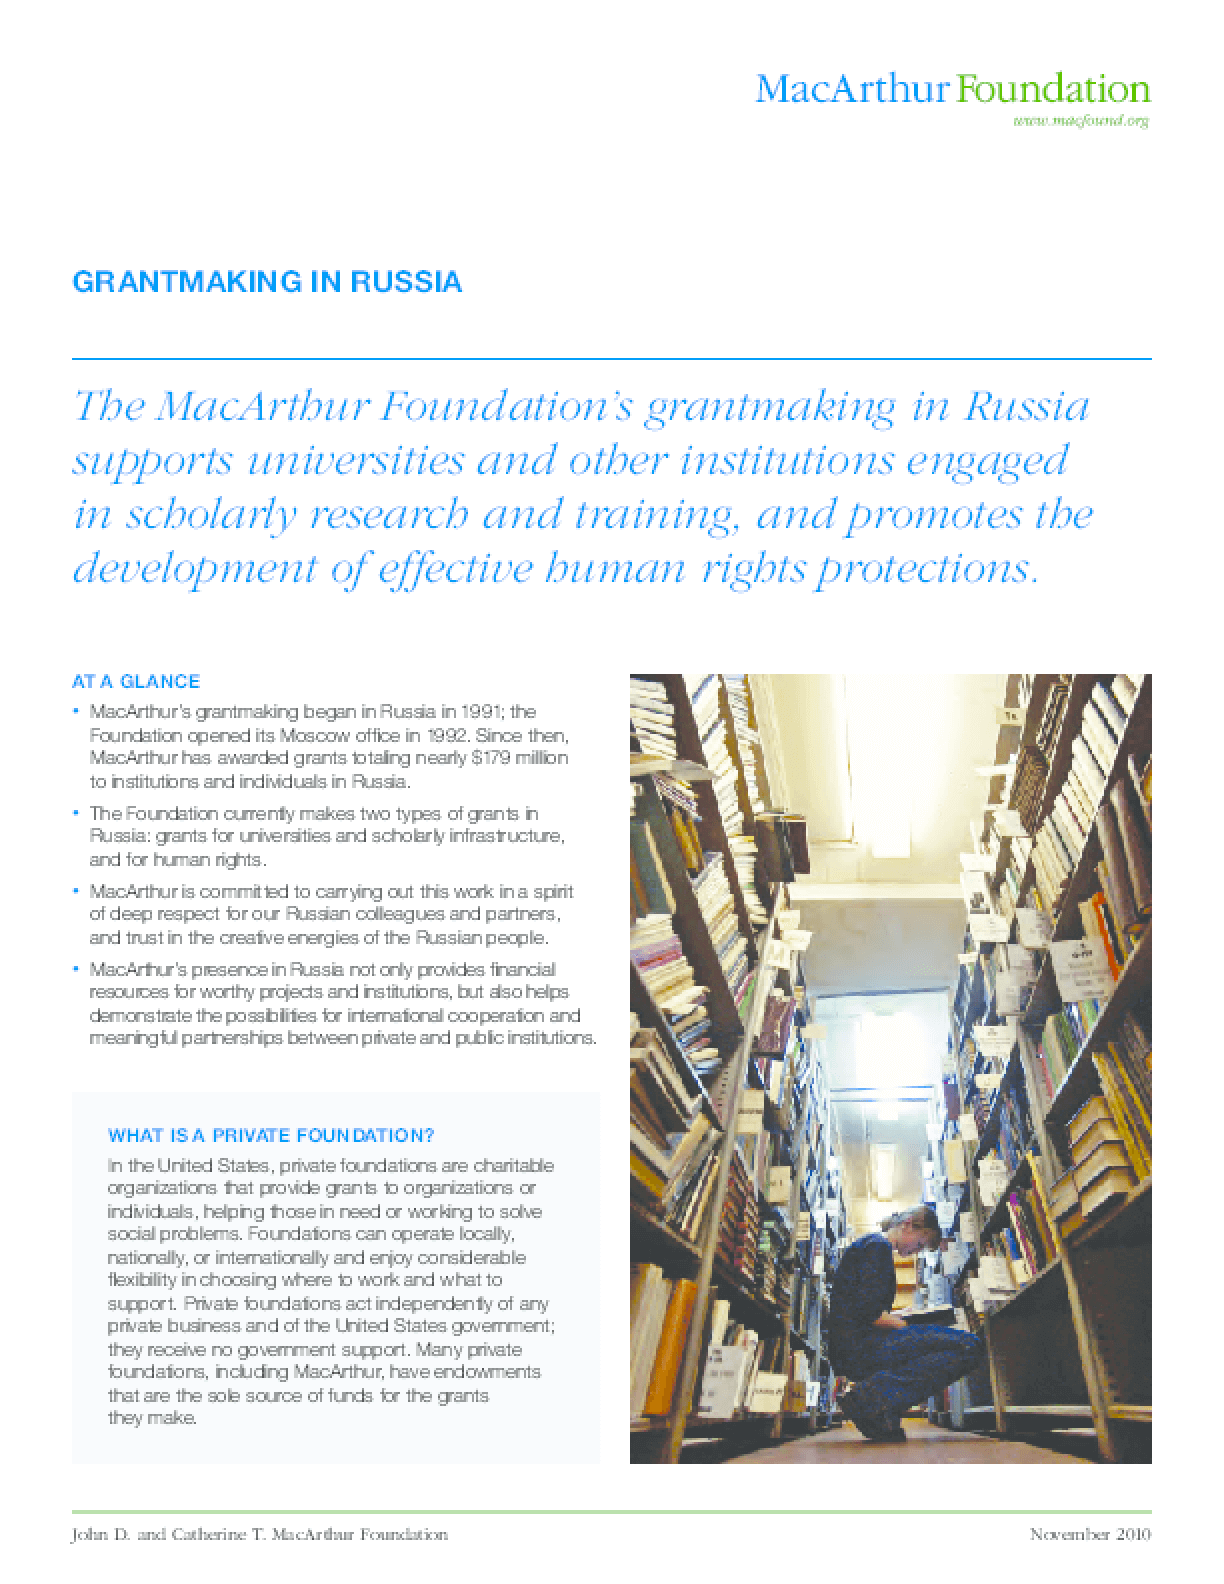 Grantmaking in Russia